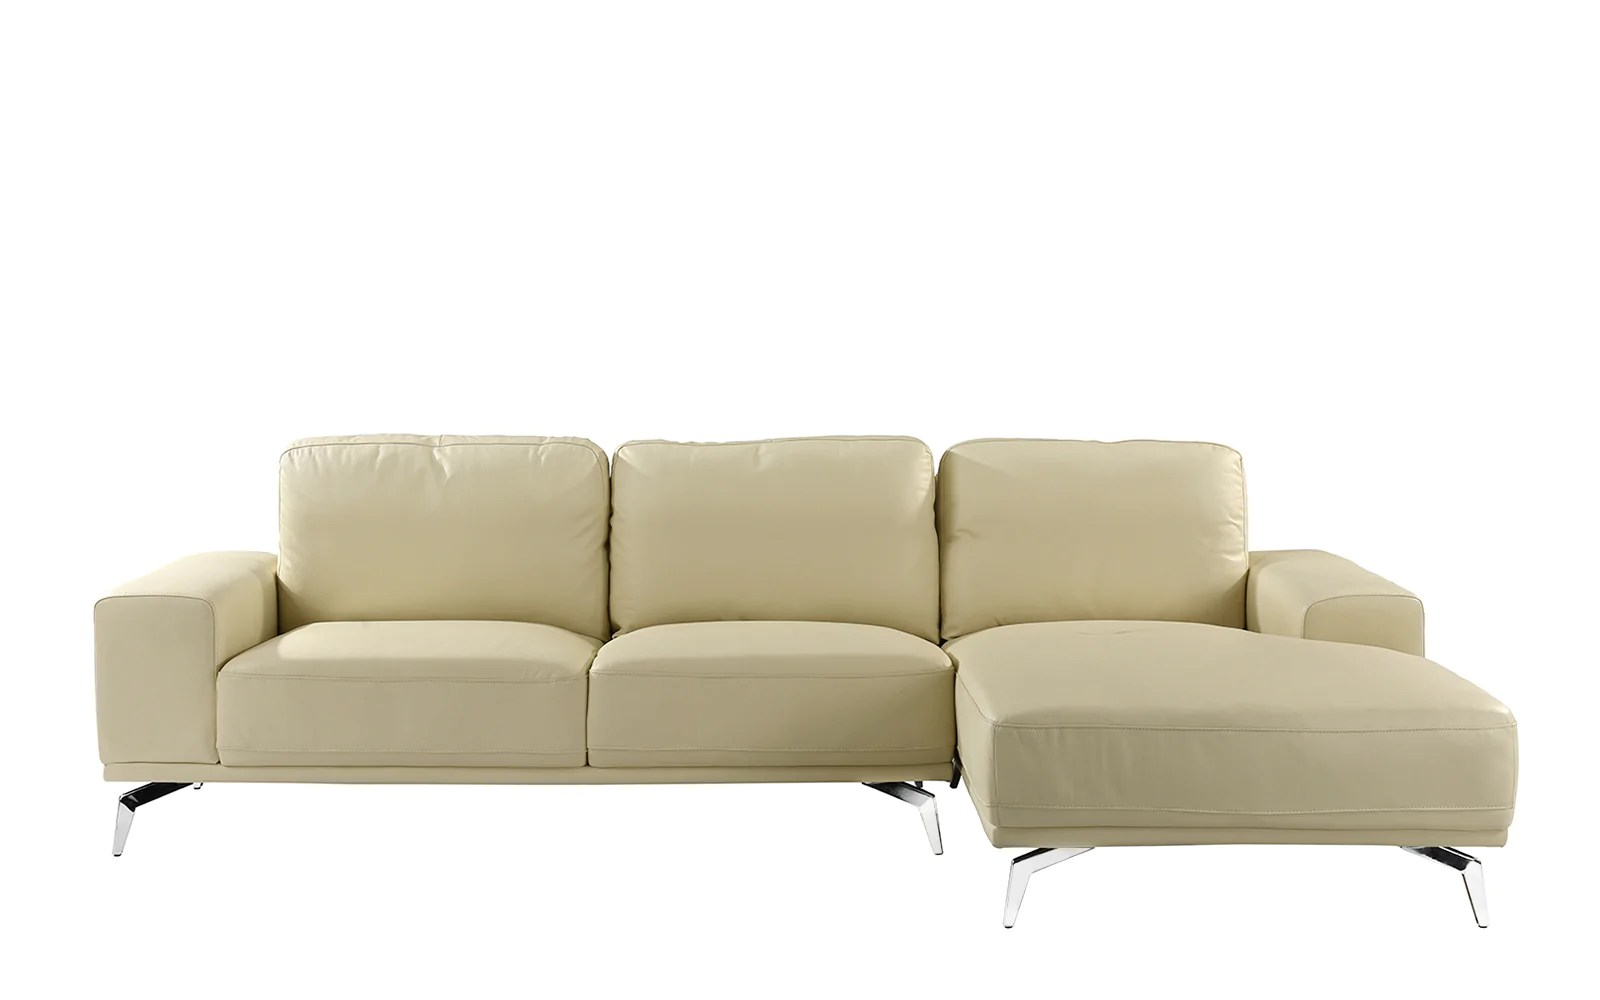 Sofa L Images Benci Modern Low Profile L Shape Sectional Sofa With Right Chaise